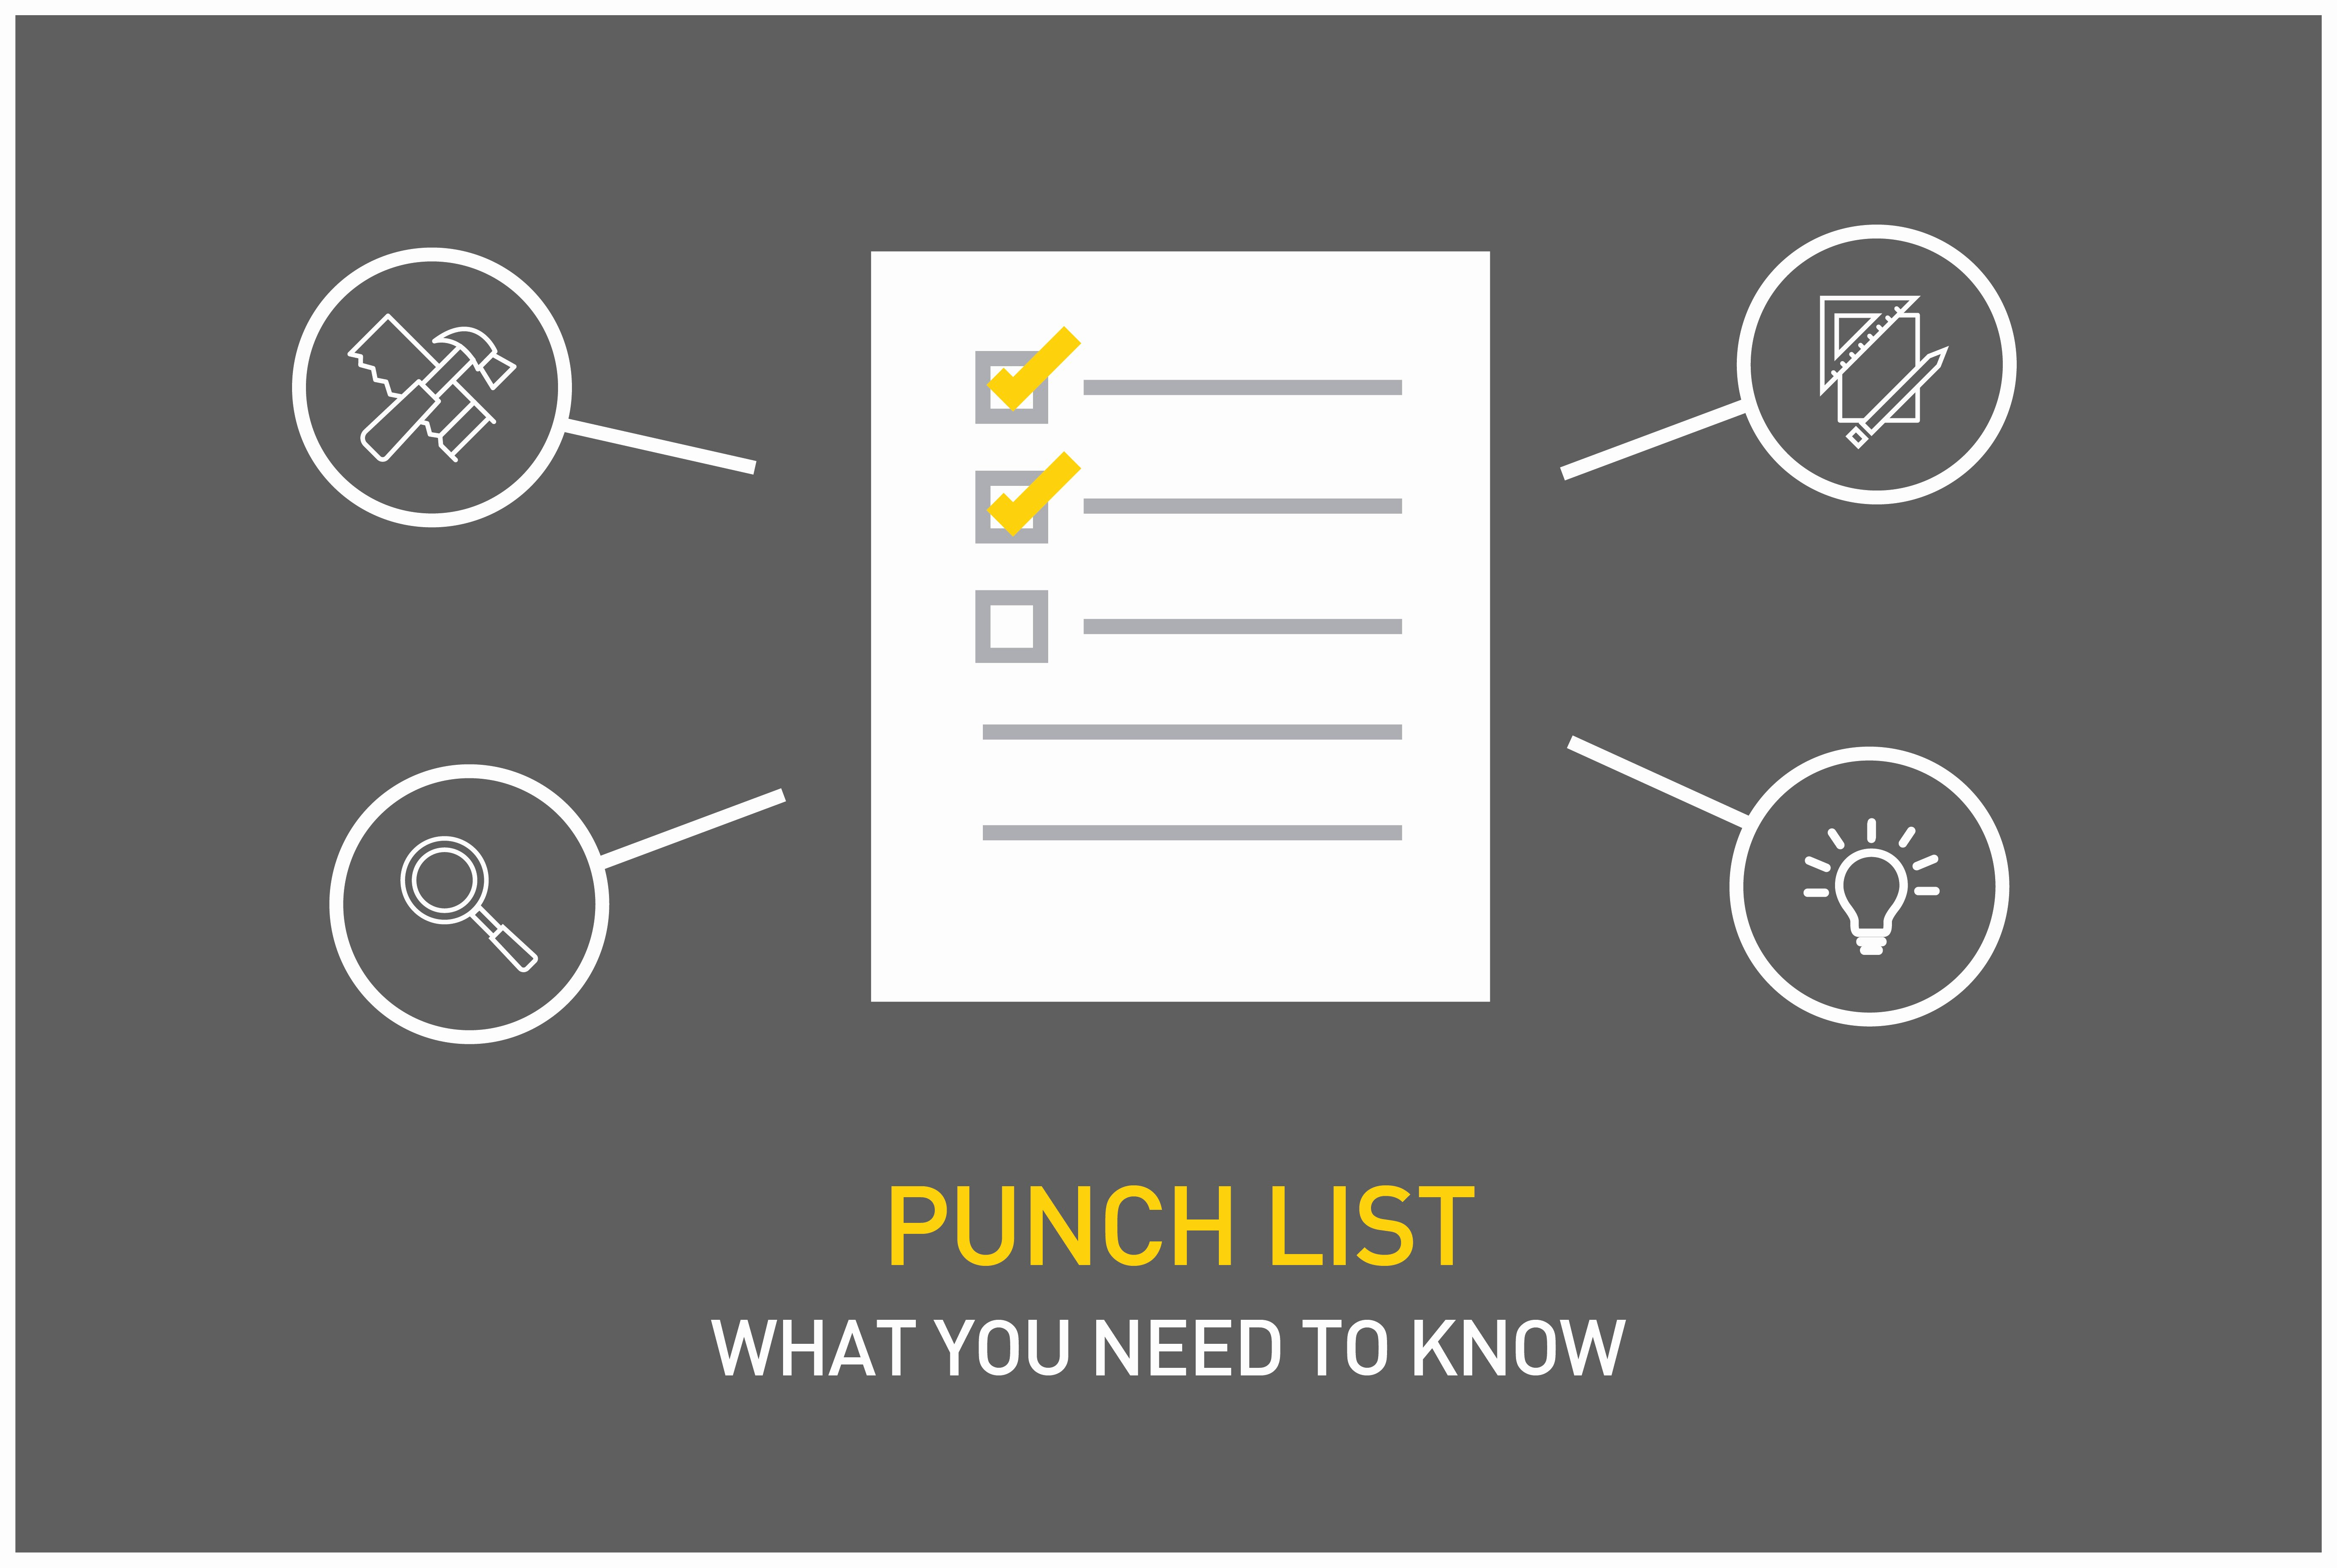 Punch Out List Template Lovely Construction Punch List Everything You Need to Know